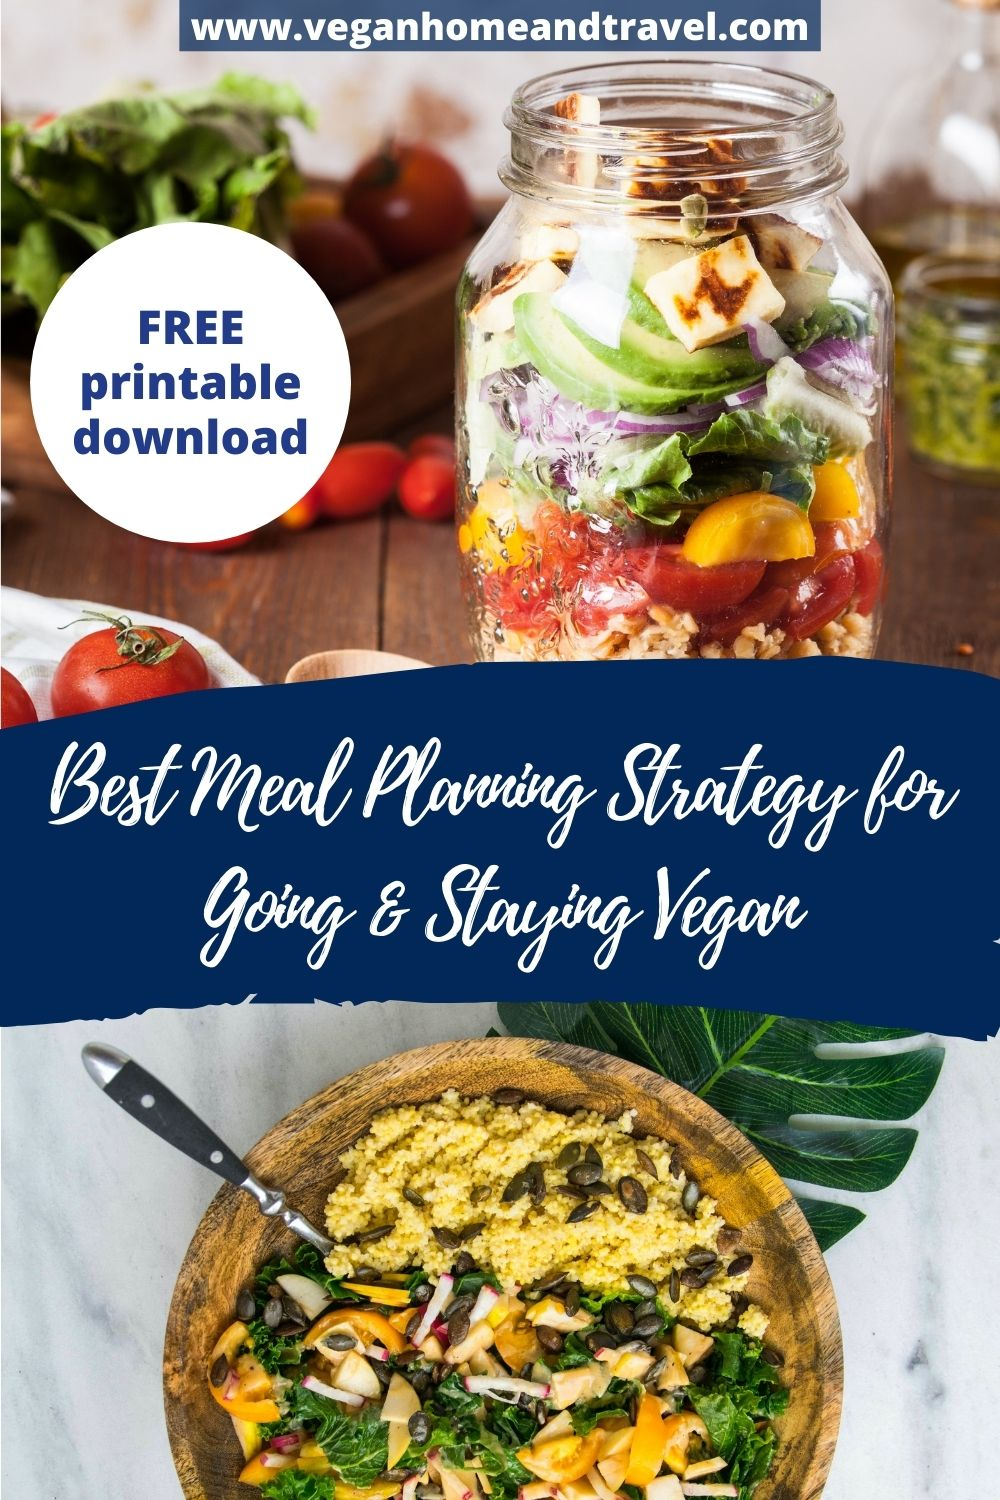 This picture shows a picture of a salad in a jar and a couscous dish with the text Best Meal PLanning Strategy for going and staying vegan